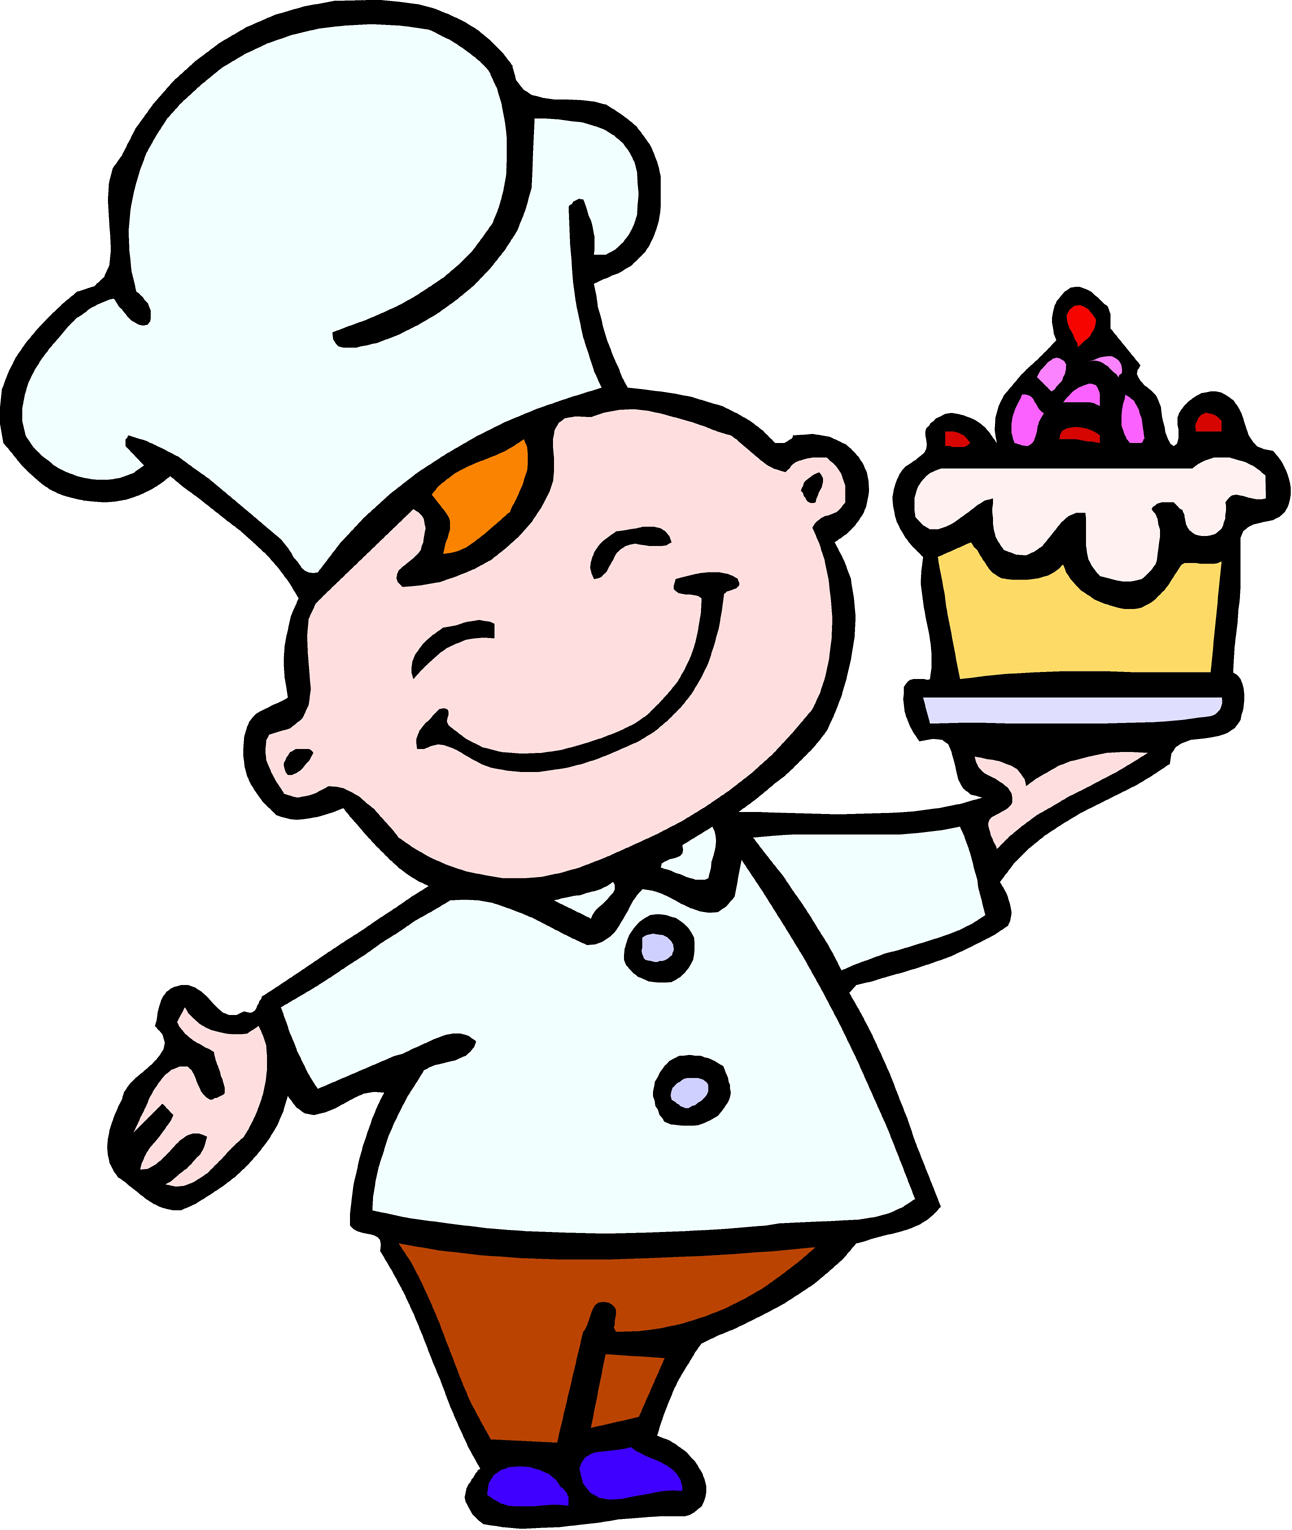 Baking clipart cooking class Inspiration Art Cliparts Culinary and